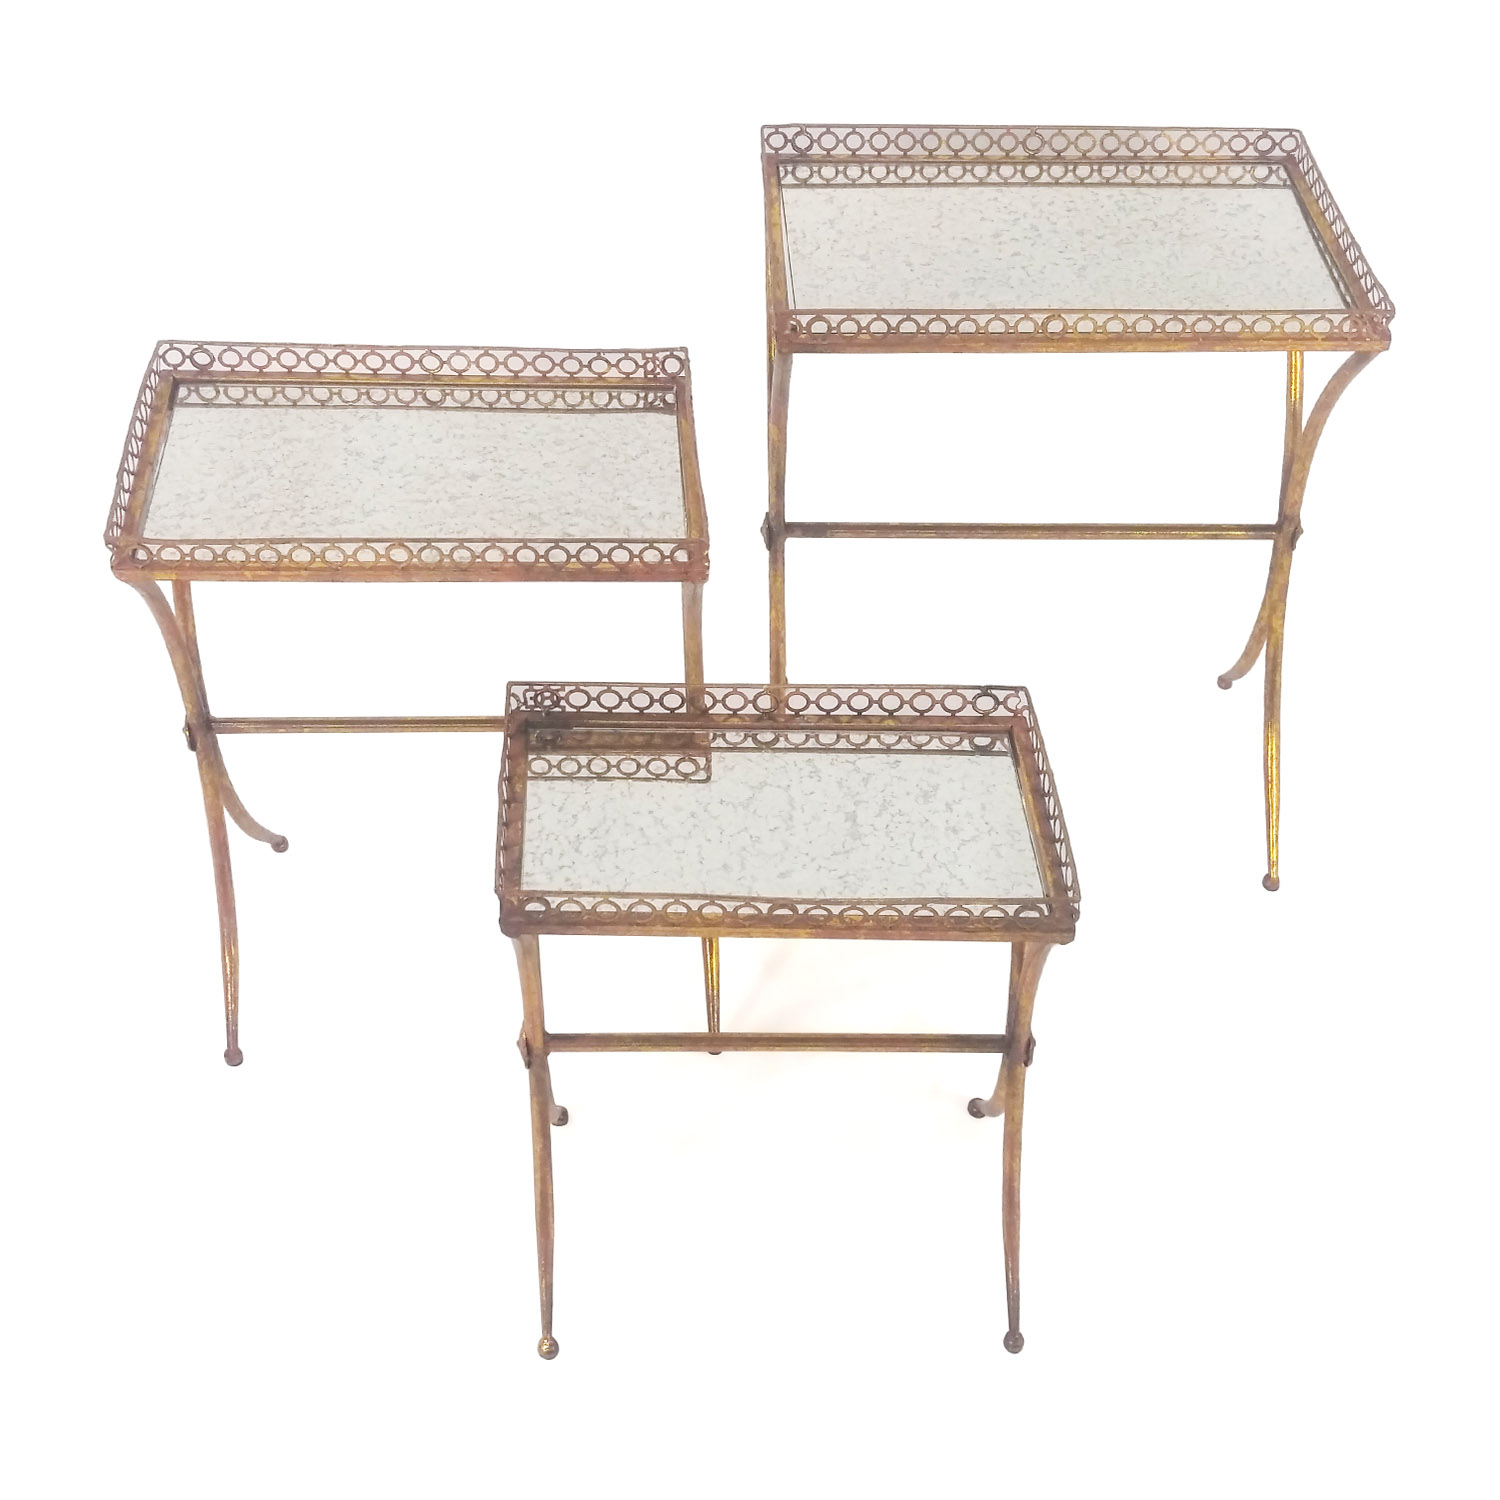 Joss and Main Joss and Main Stackable Tables on sale